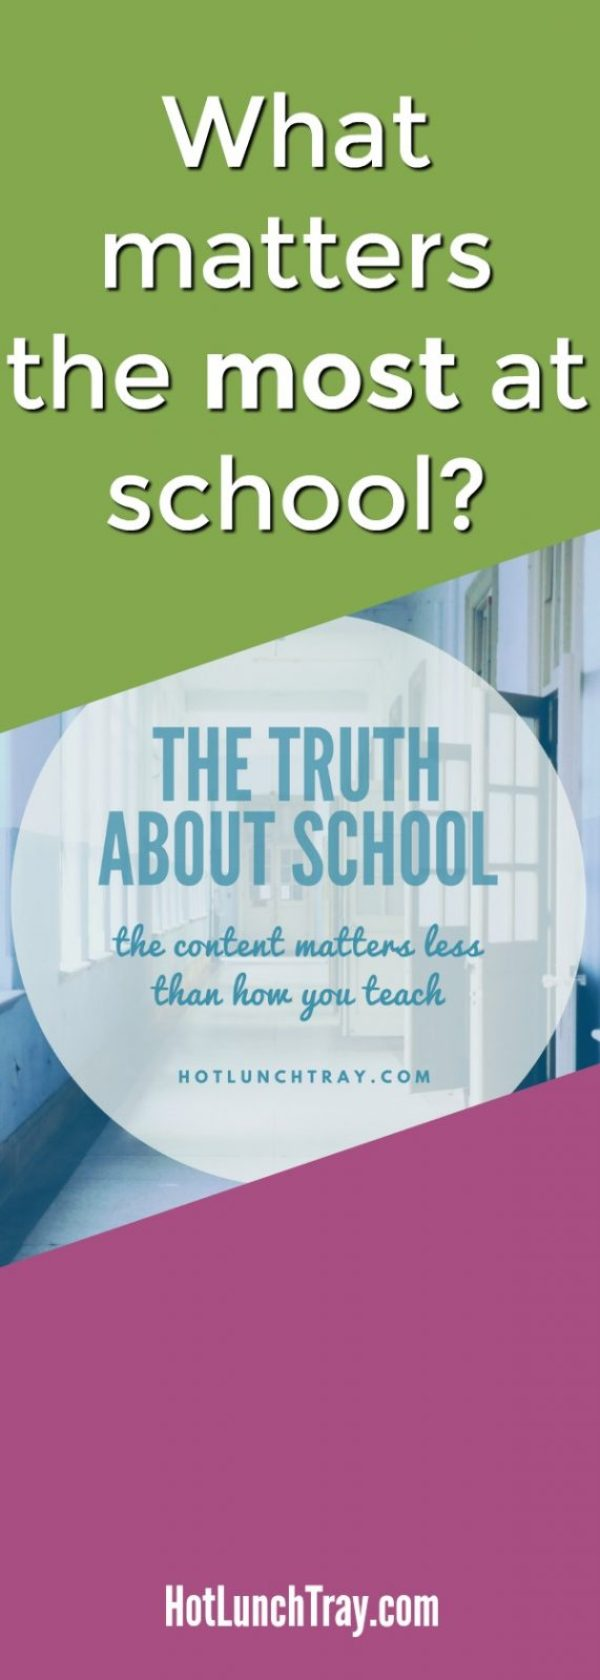 The Truth about School PIN